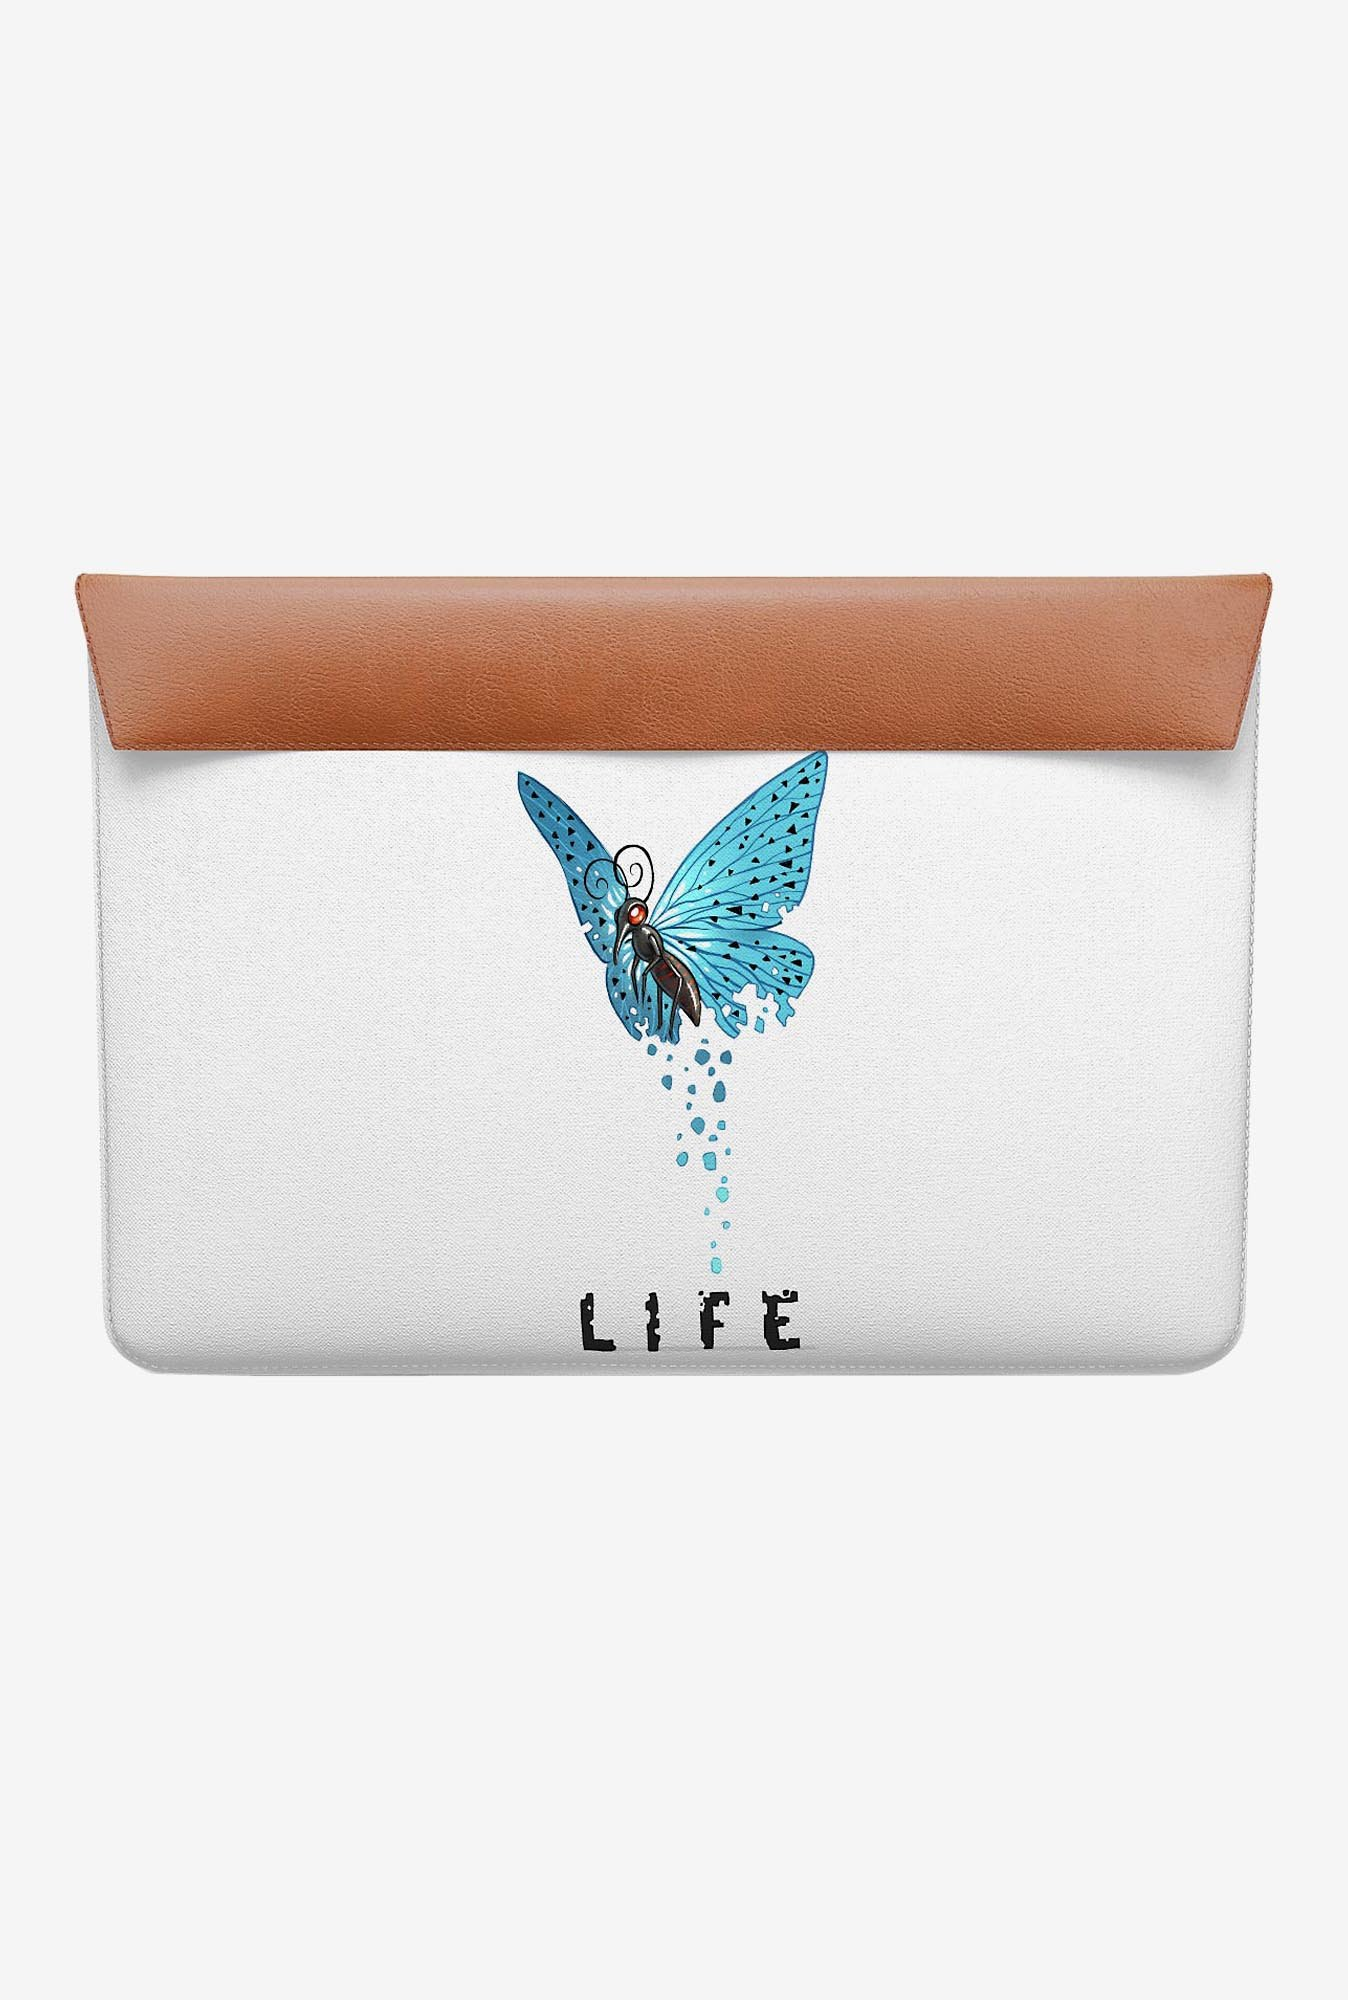 DailyObjects Broken Wings MacBook Pro 15 Envelope Sleeve